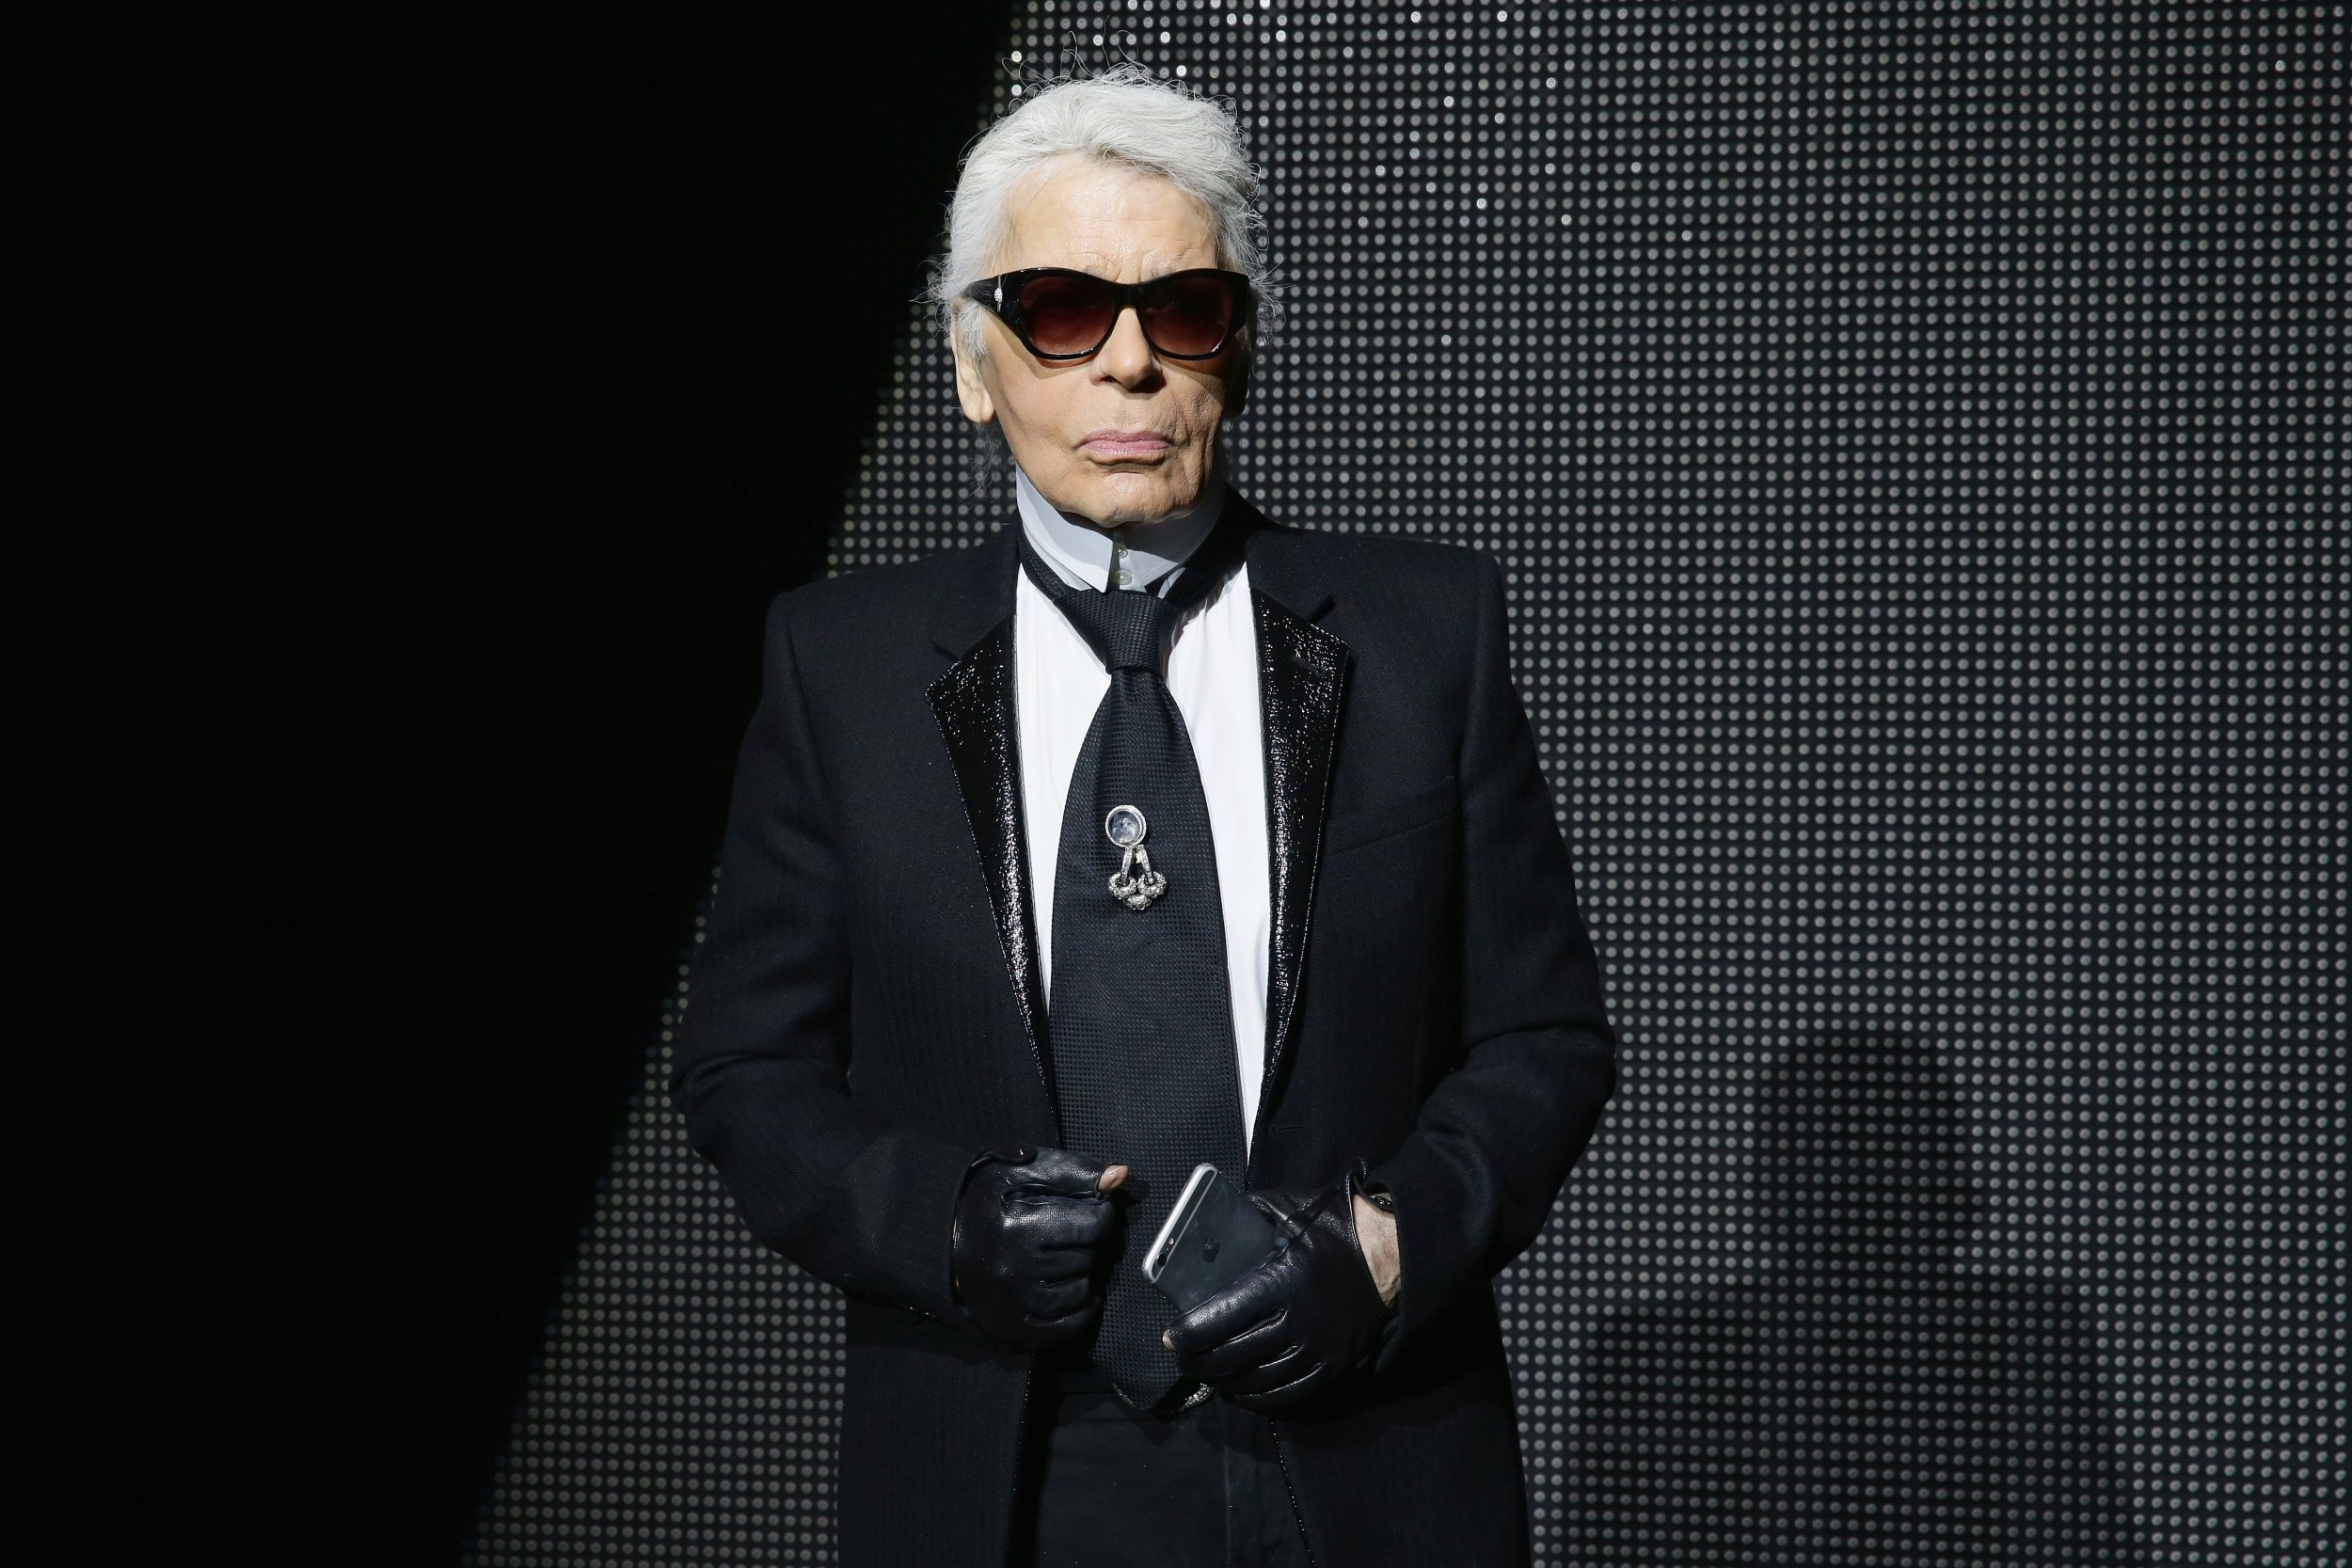 Legendary fashion designer Karl Lagerfeld dead aged 85 - French reports